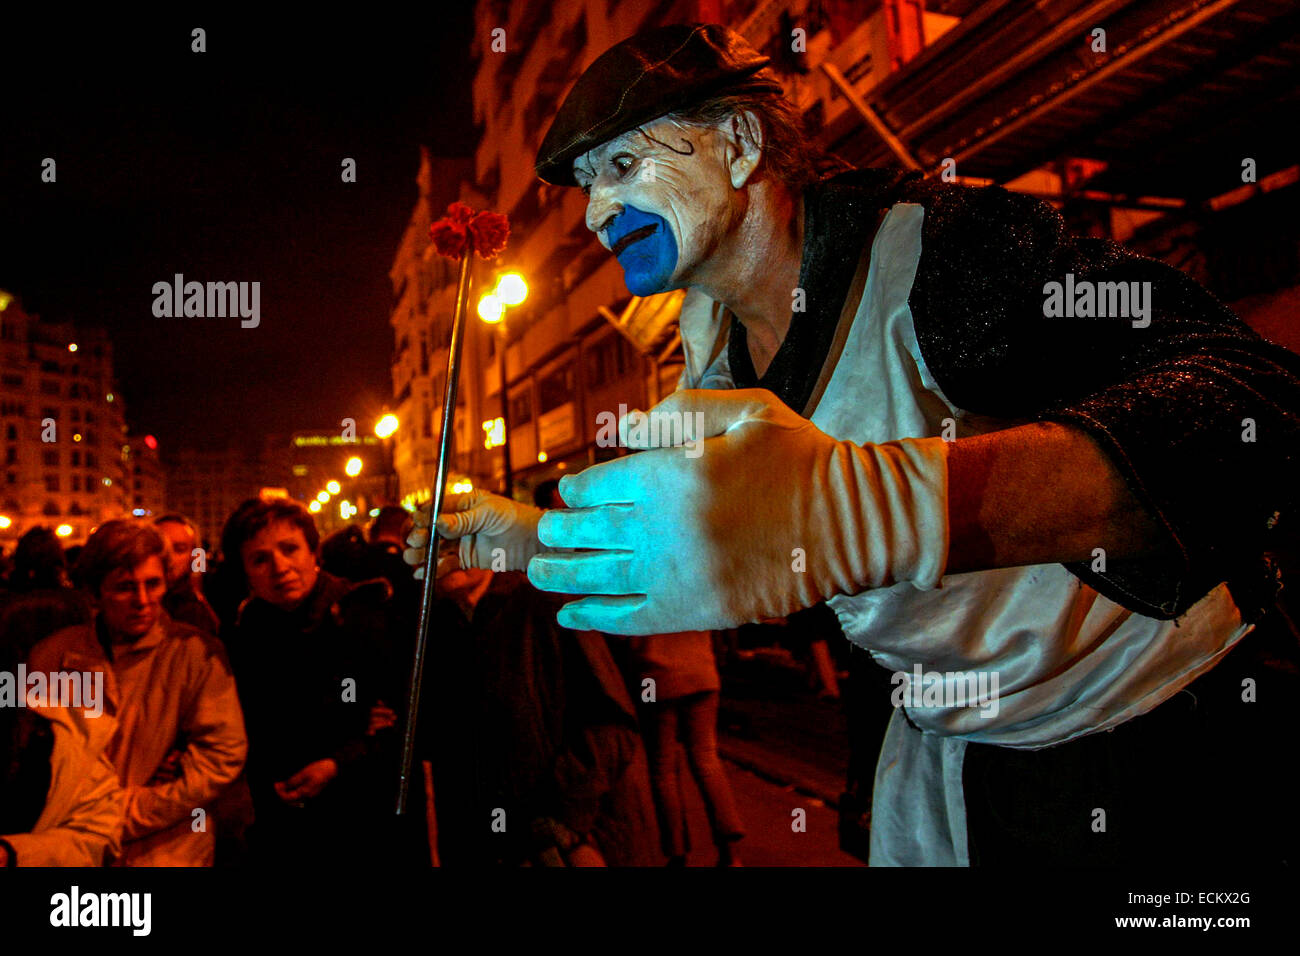 During Las Fallas, a traditional festival in Valencia Spain Mime - Stock Image